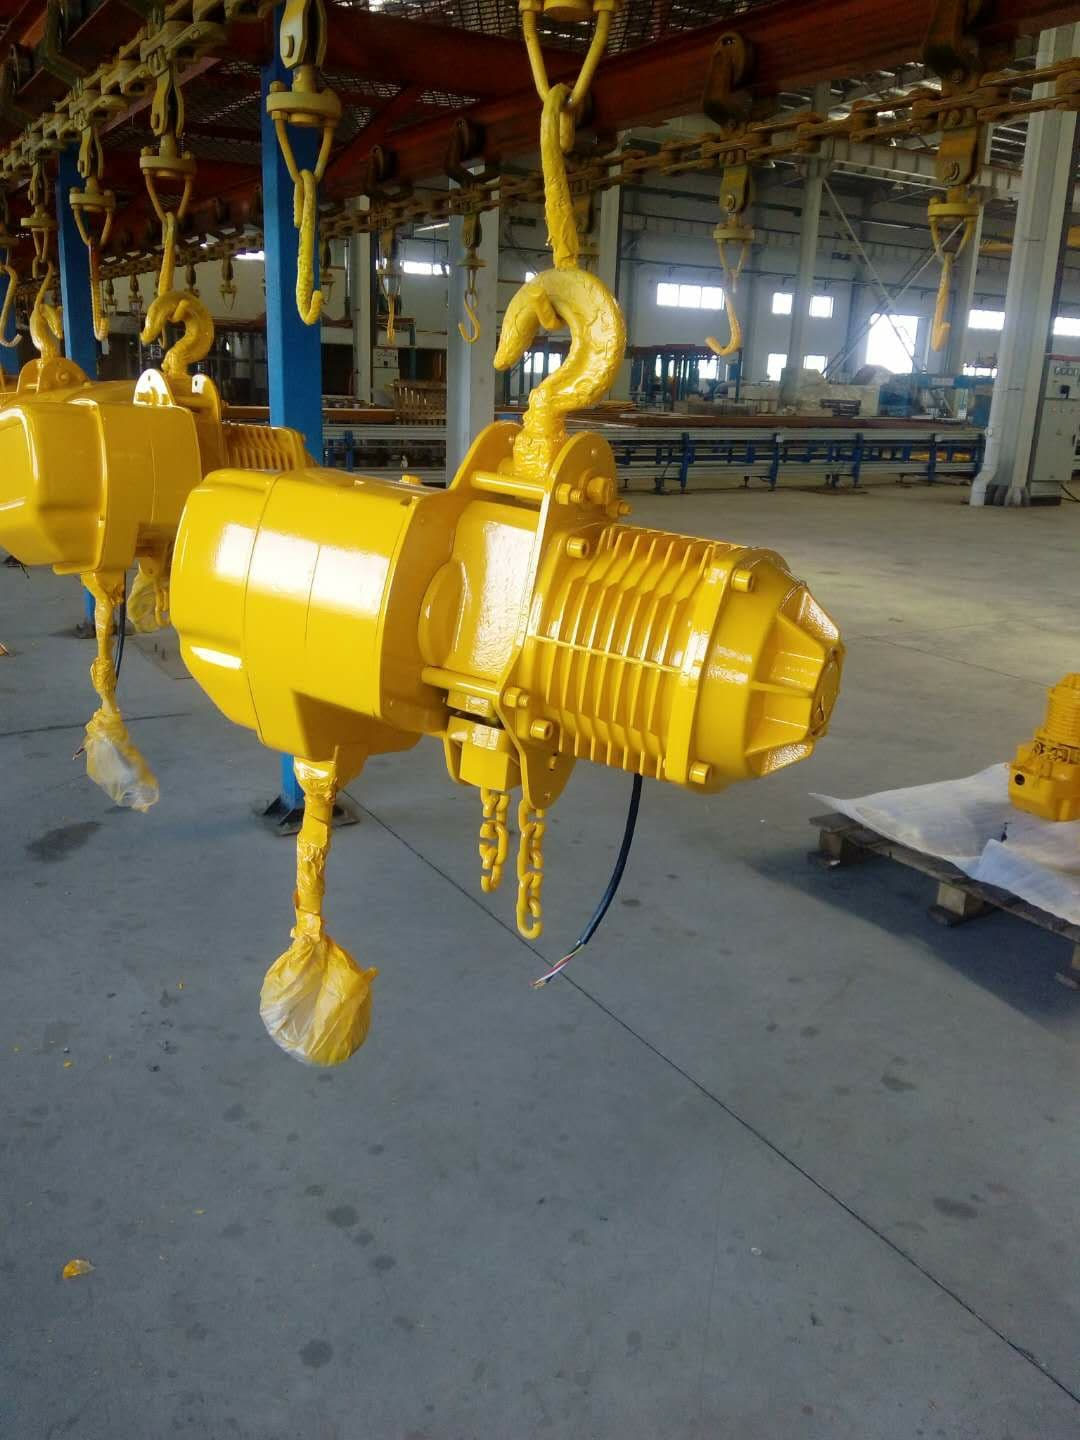 T Electric chain hoist